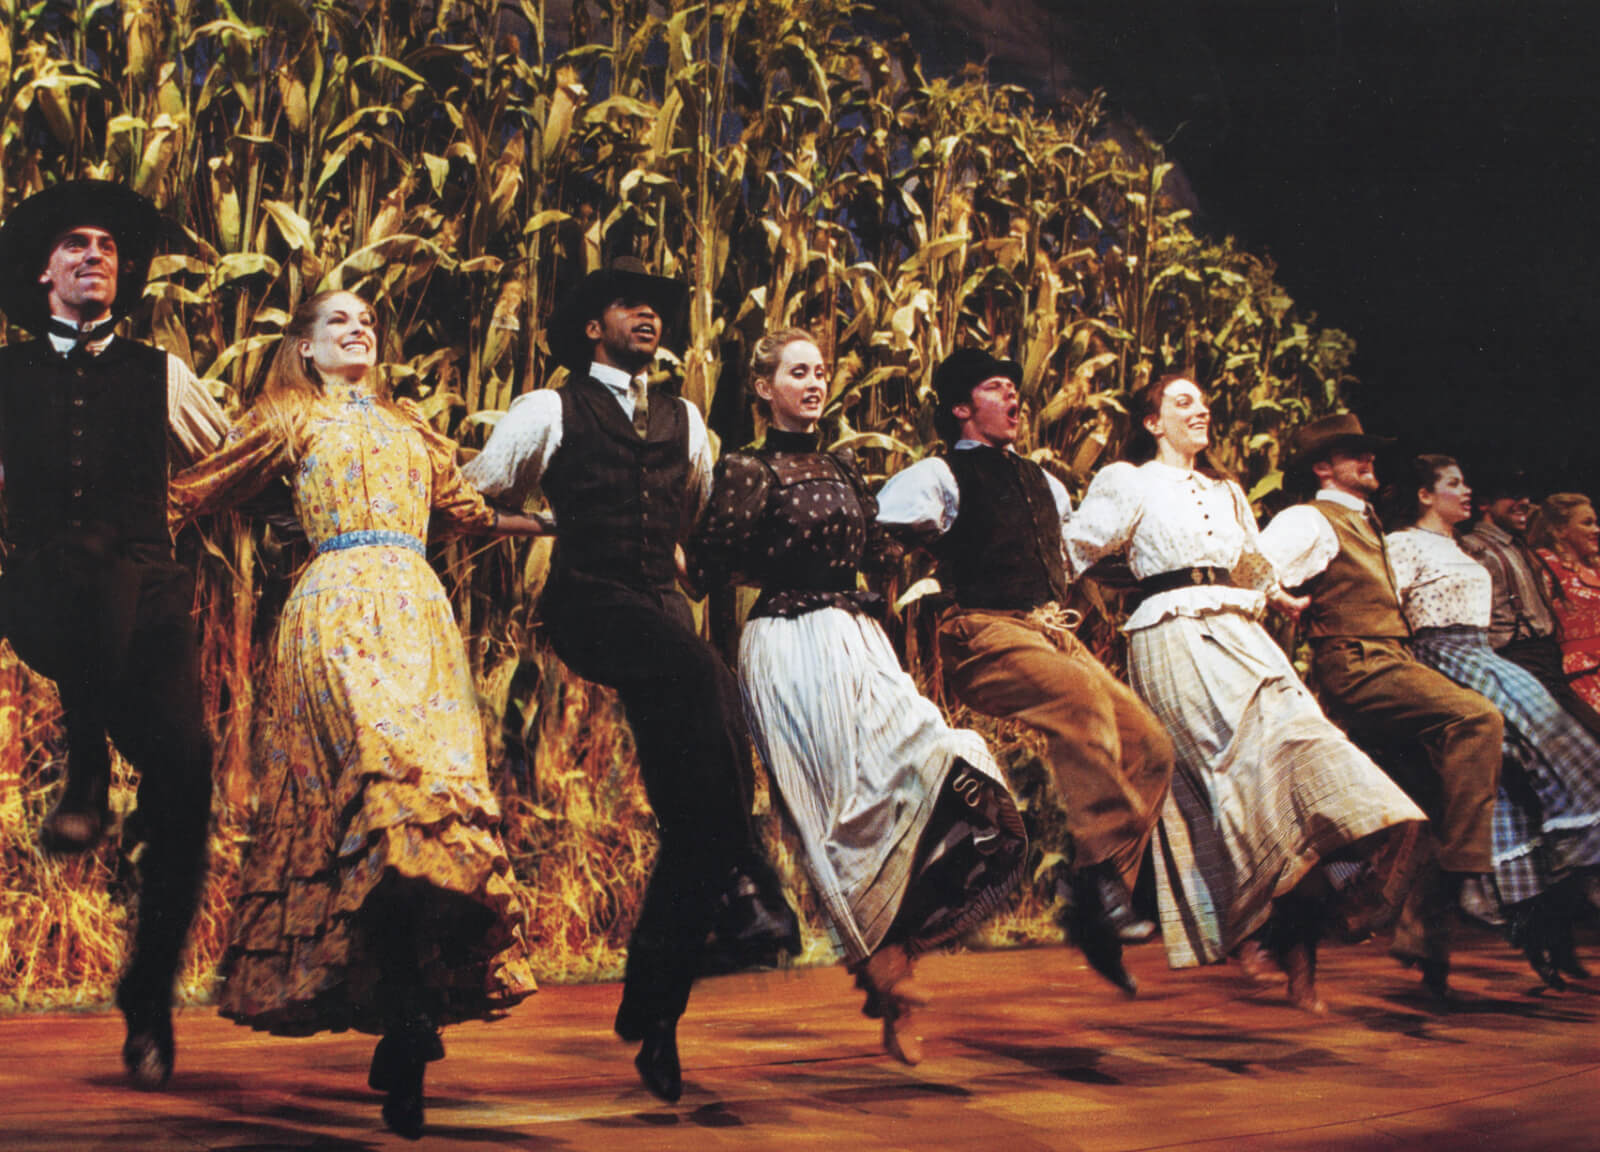 The Broadway cast of Oklahoma dance in front of a cornfield.